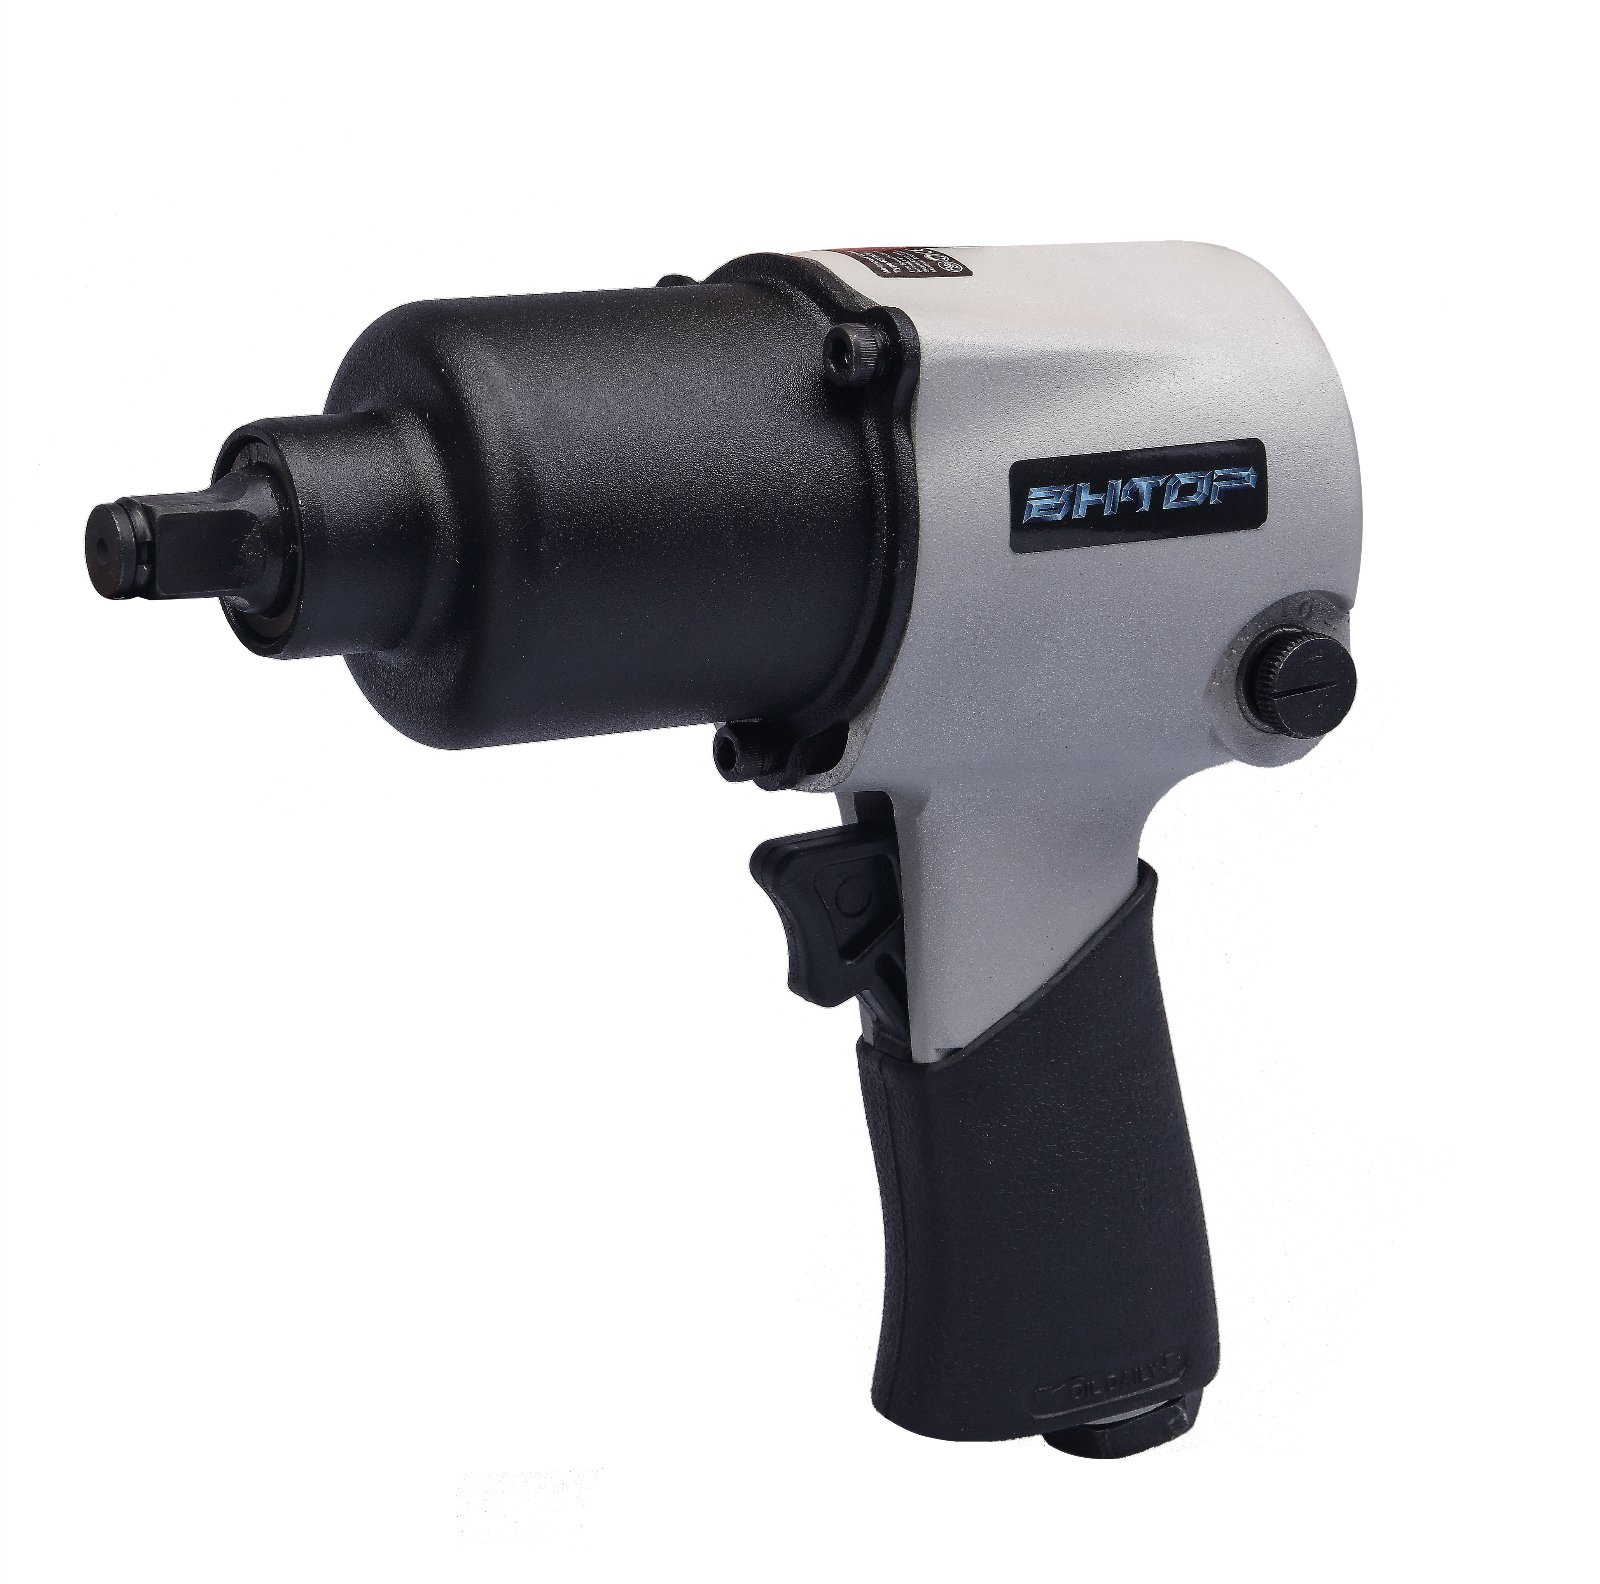 1/2''-Air Impact Wrench BHTOP Reinforced Body,Air-powered,Comfort Grip,420 ft-lbs, Twin Hammer,No Electricity